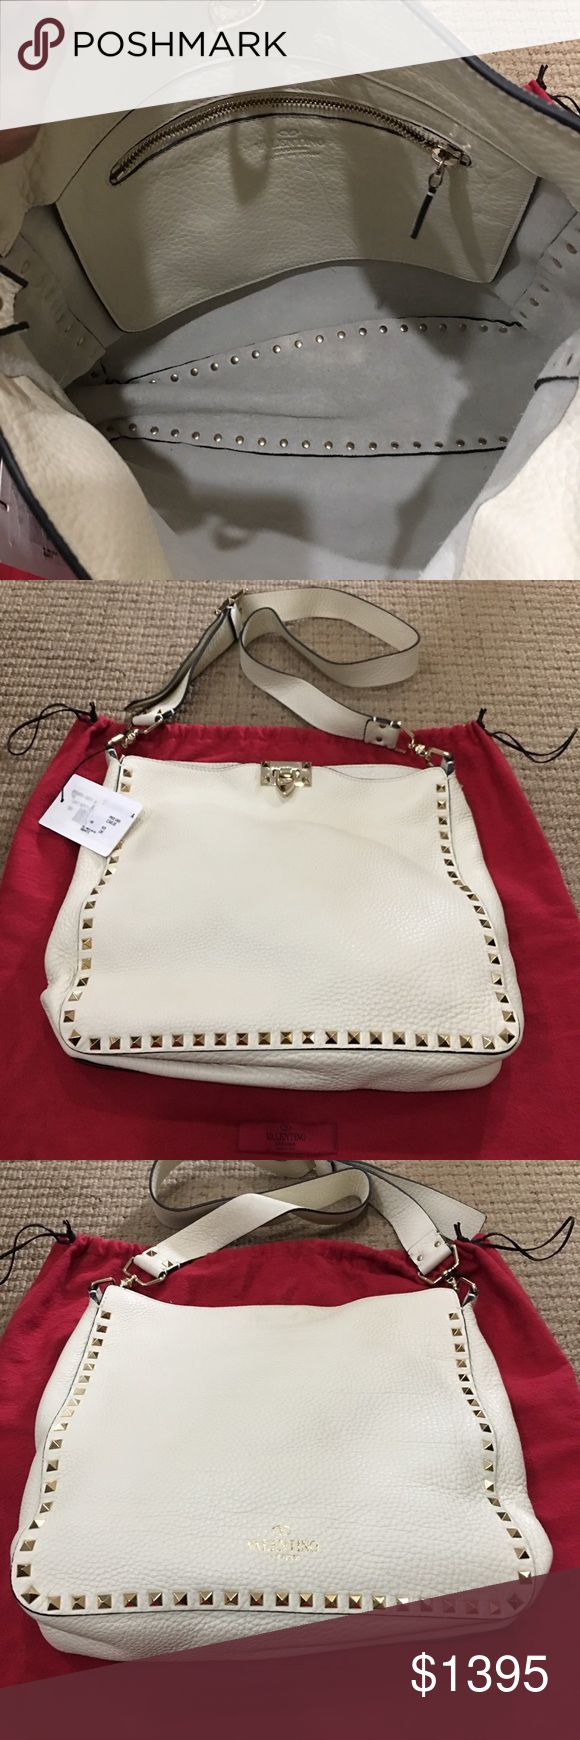 Authentic Valentino crossbody bag Authentic Valentino crossbody bag.   Color: ivory Hardware: gold Leather: pebbled Condition: Brand New; never worn Valentino Garavani Bags Crossbody Bags